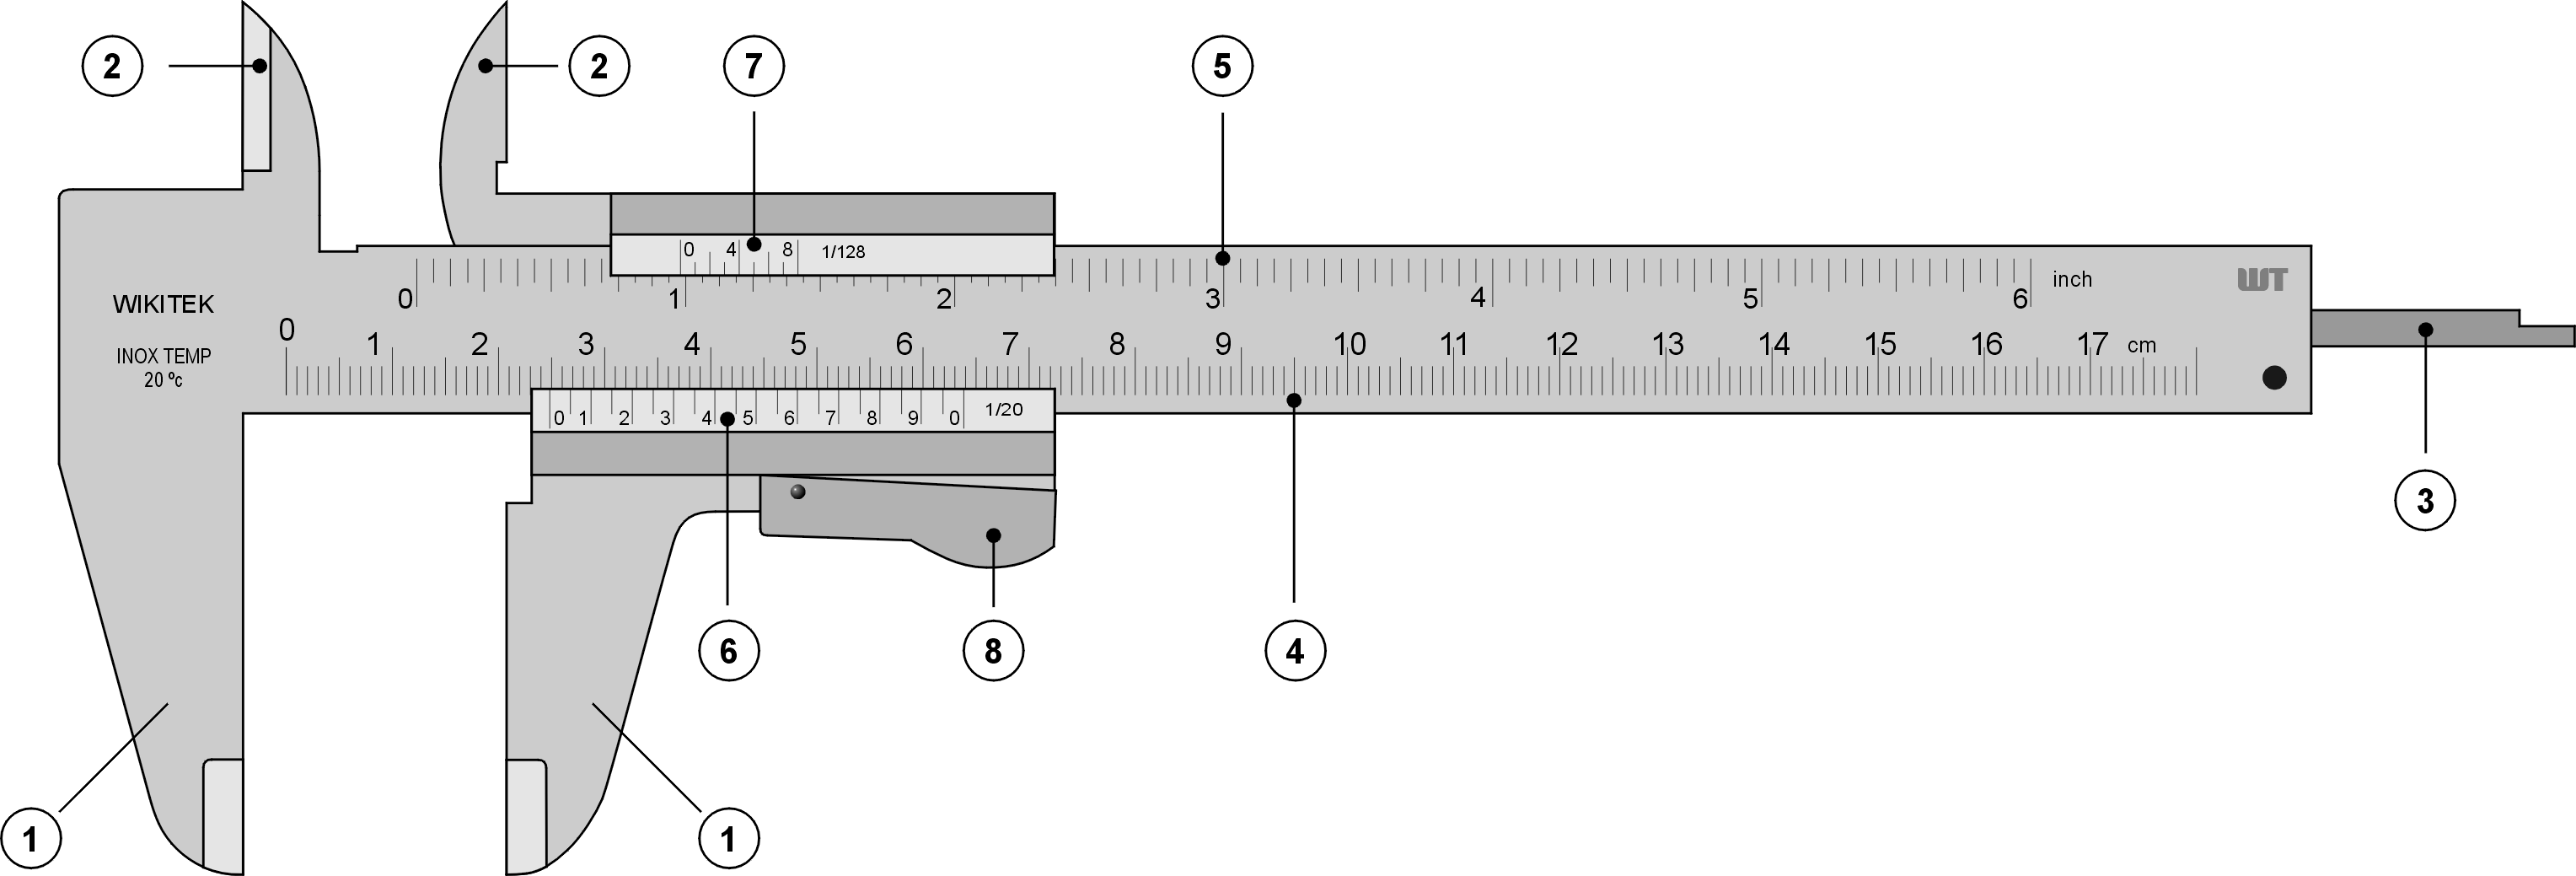 Full Diagram Of Vernier Caliper List Schematic Circuit Trailer Wiring Harness Han File Wikimedia Commons Rh Org